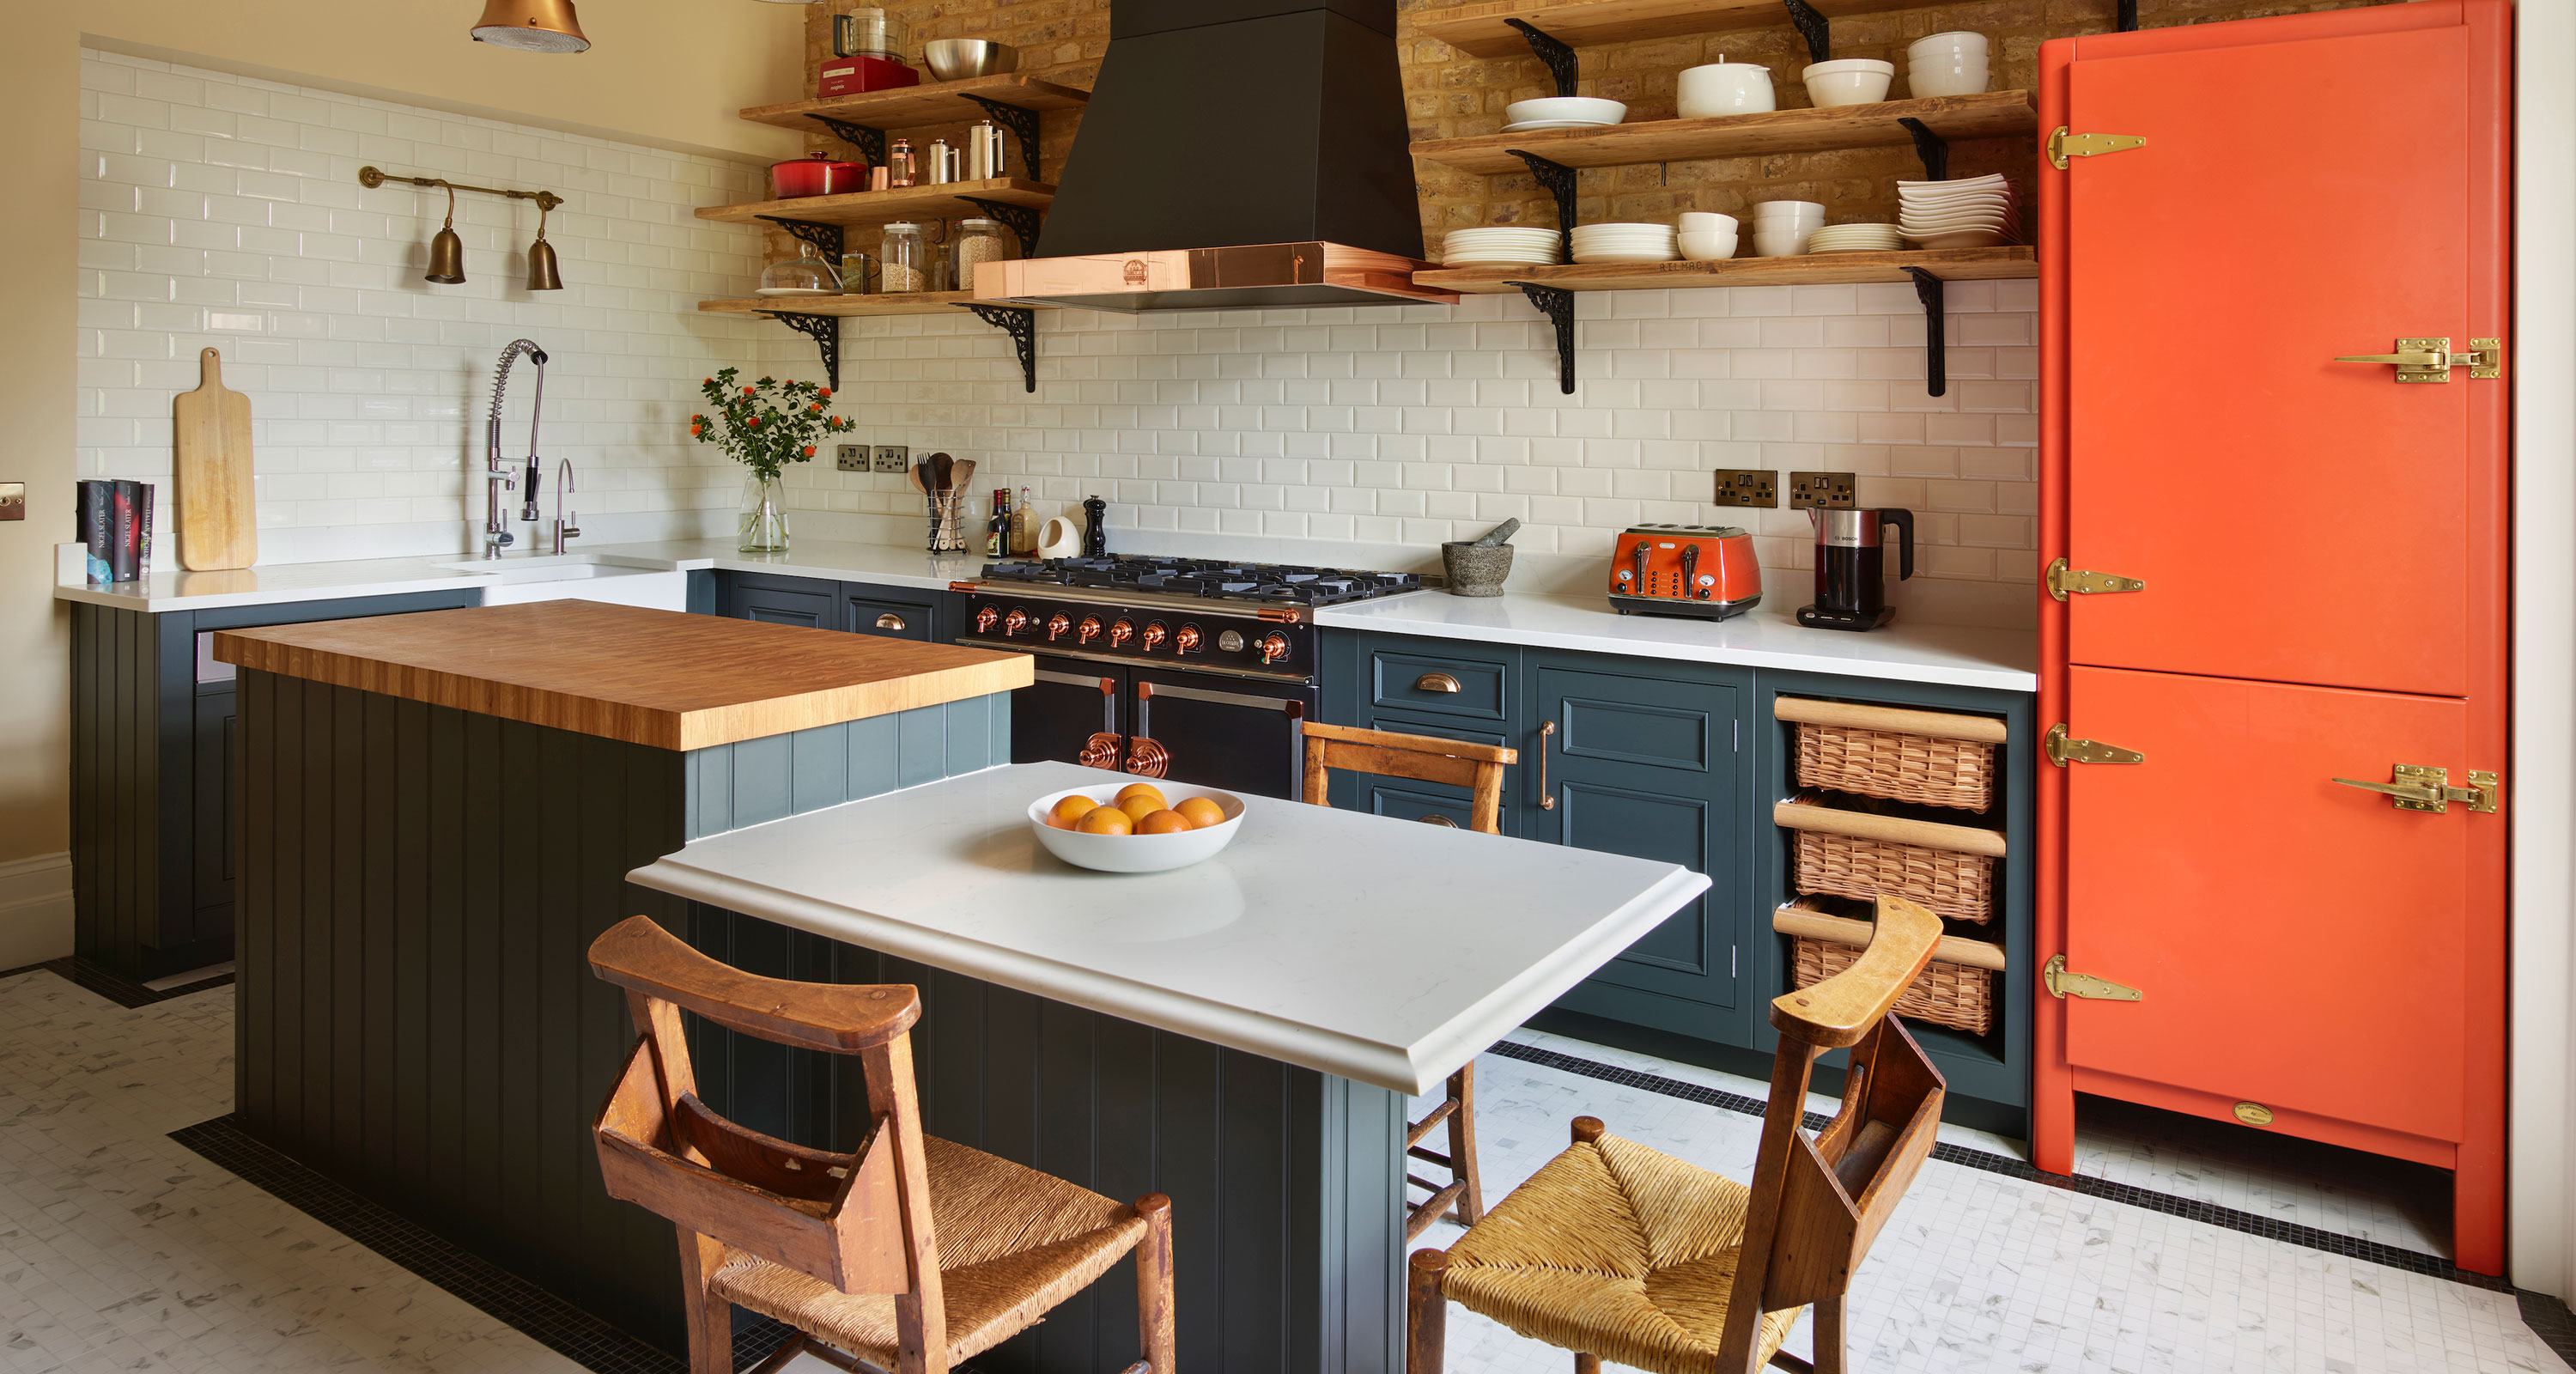 Farmhouse Kitchen Island Ideas Workstations And Breakfast Bars With A Rural Flavor Country